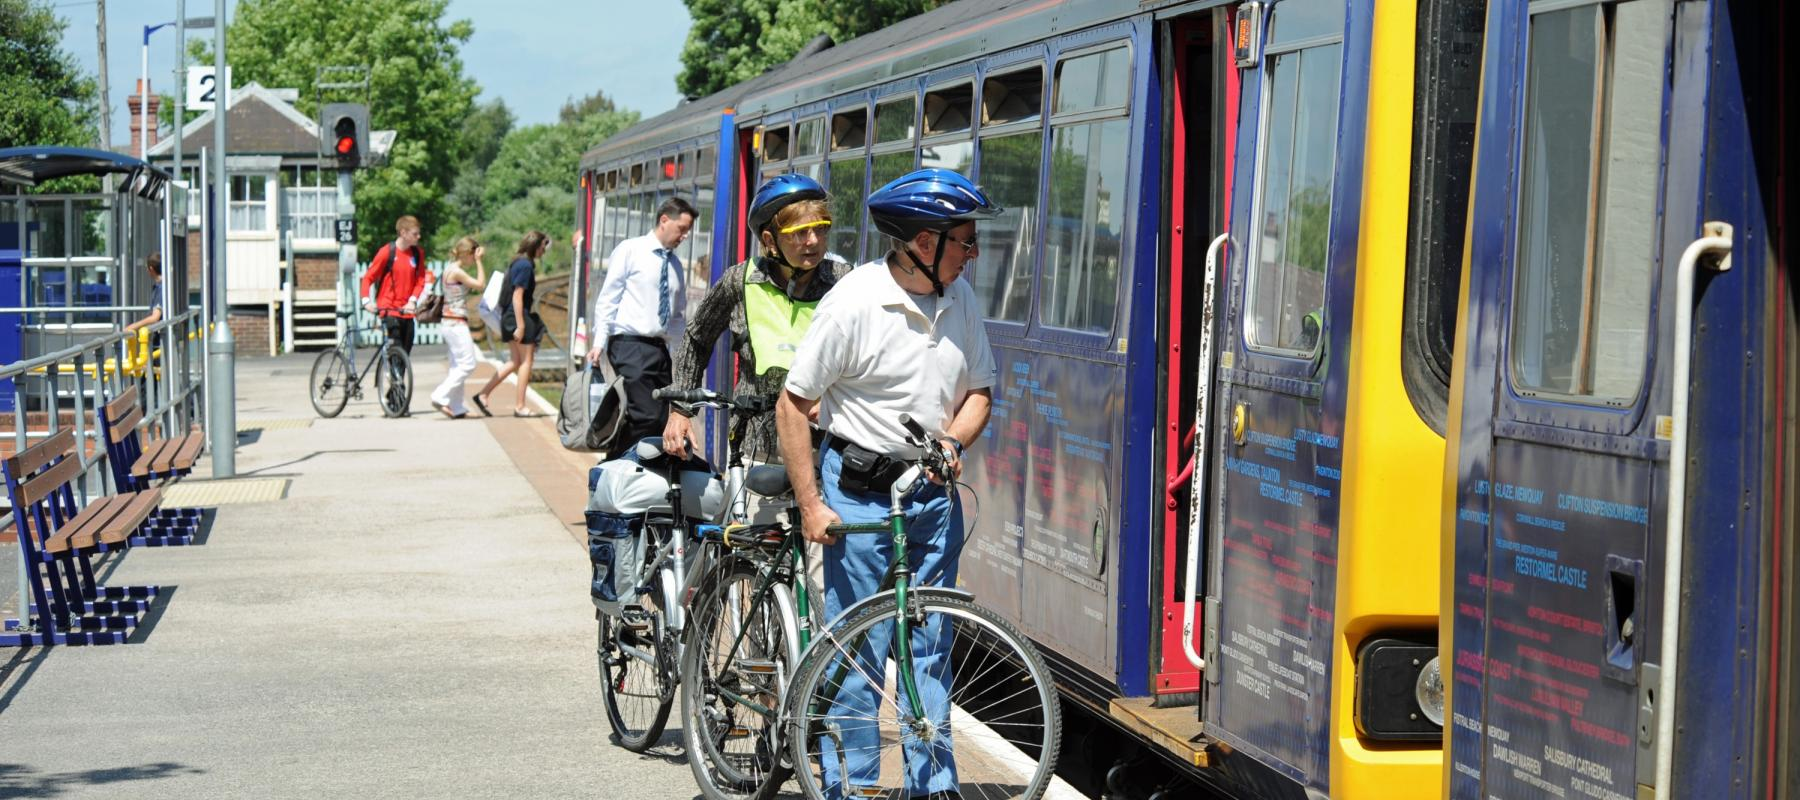 Cyclists boarding train at Topsham Station, on the Avocet Line